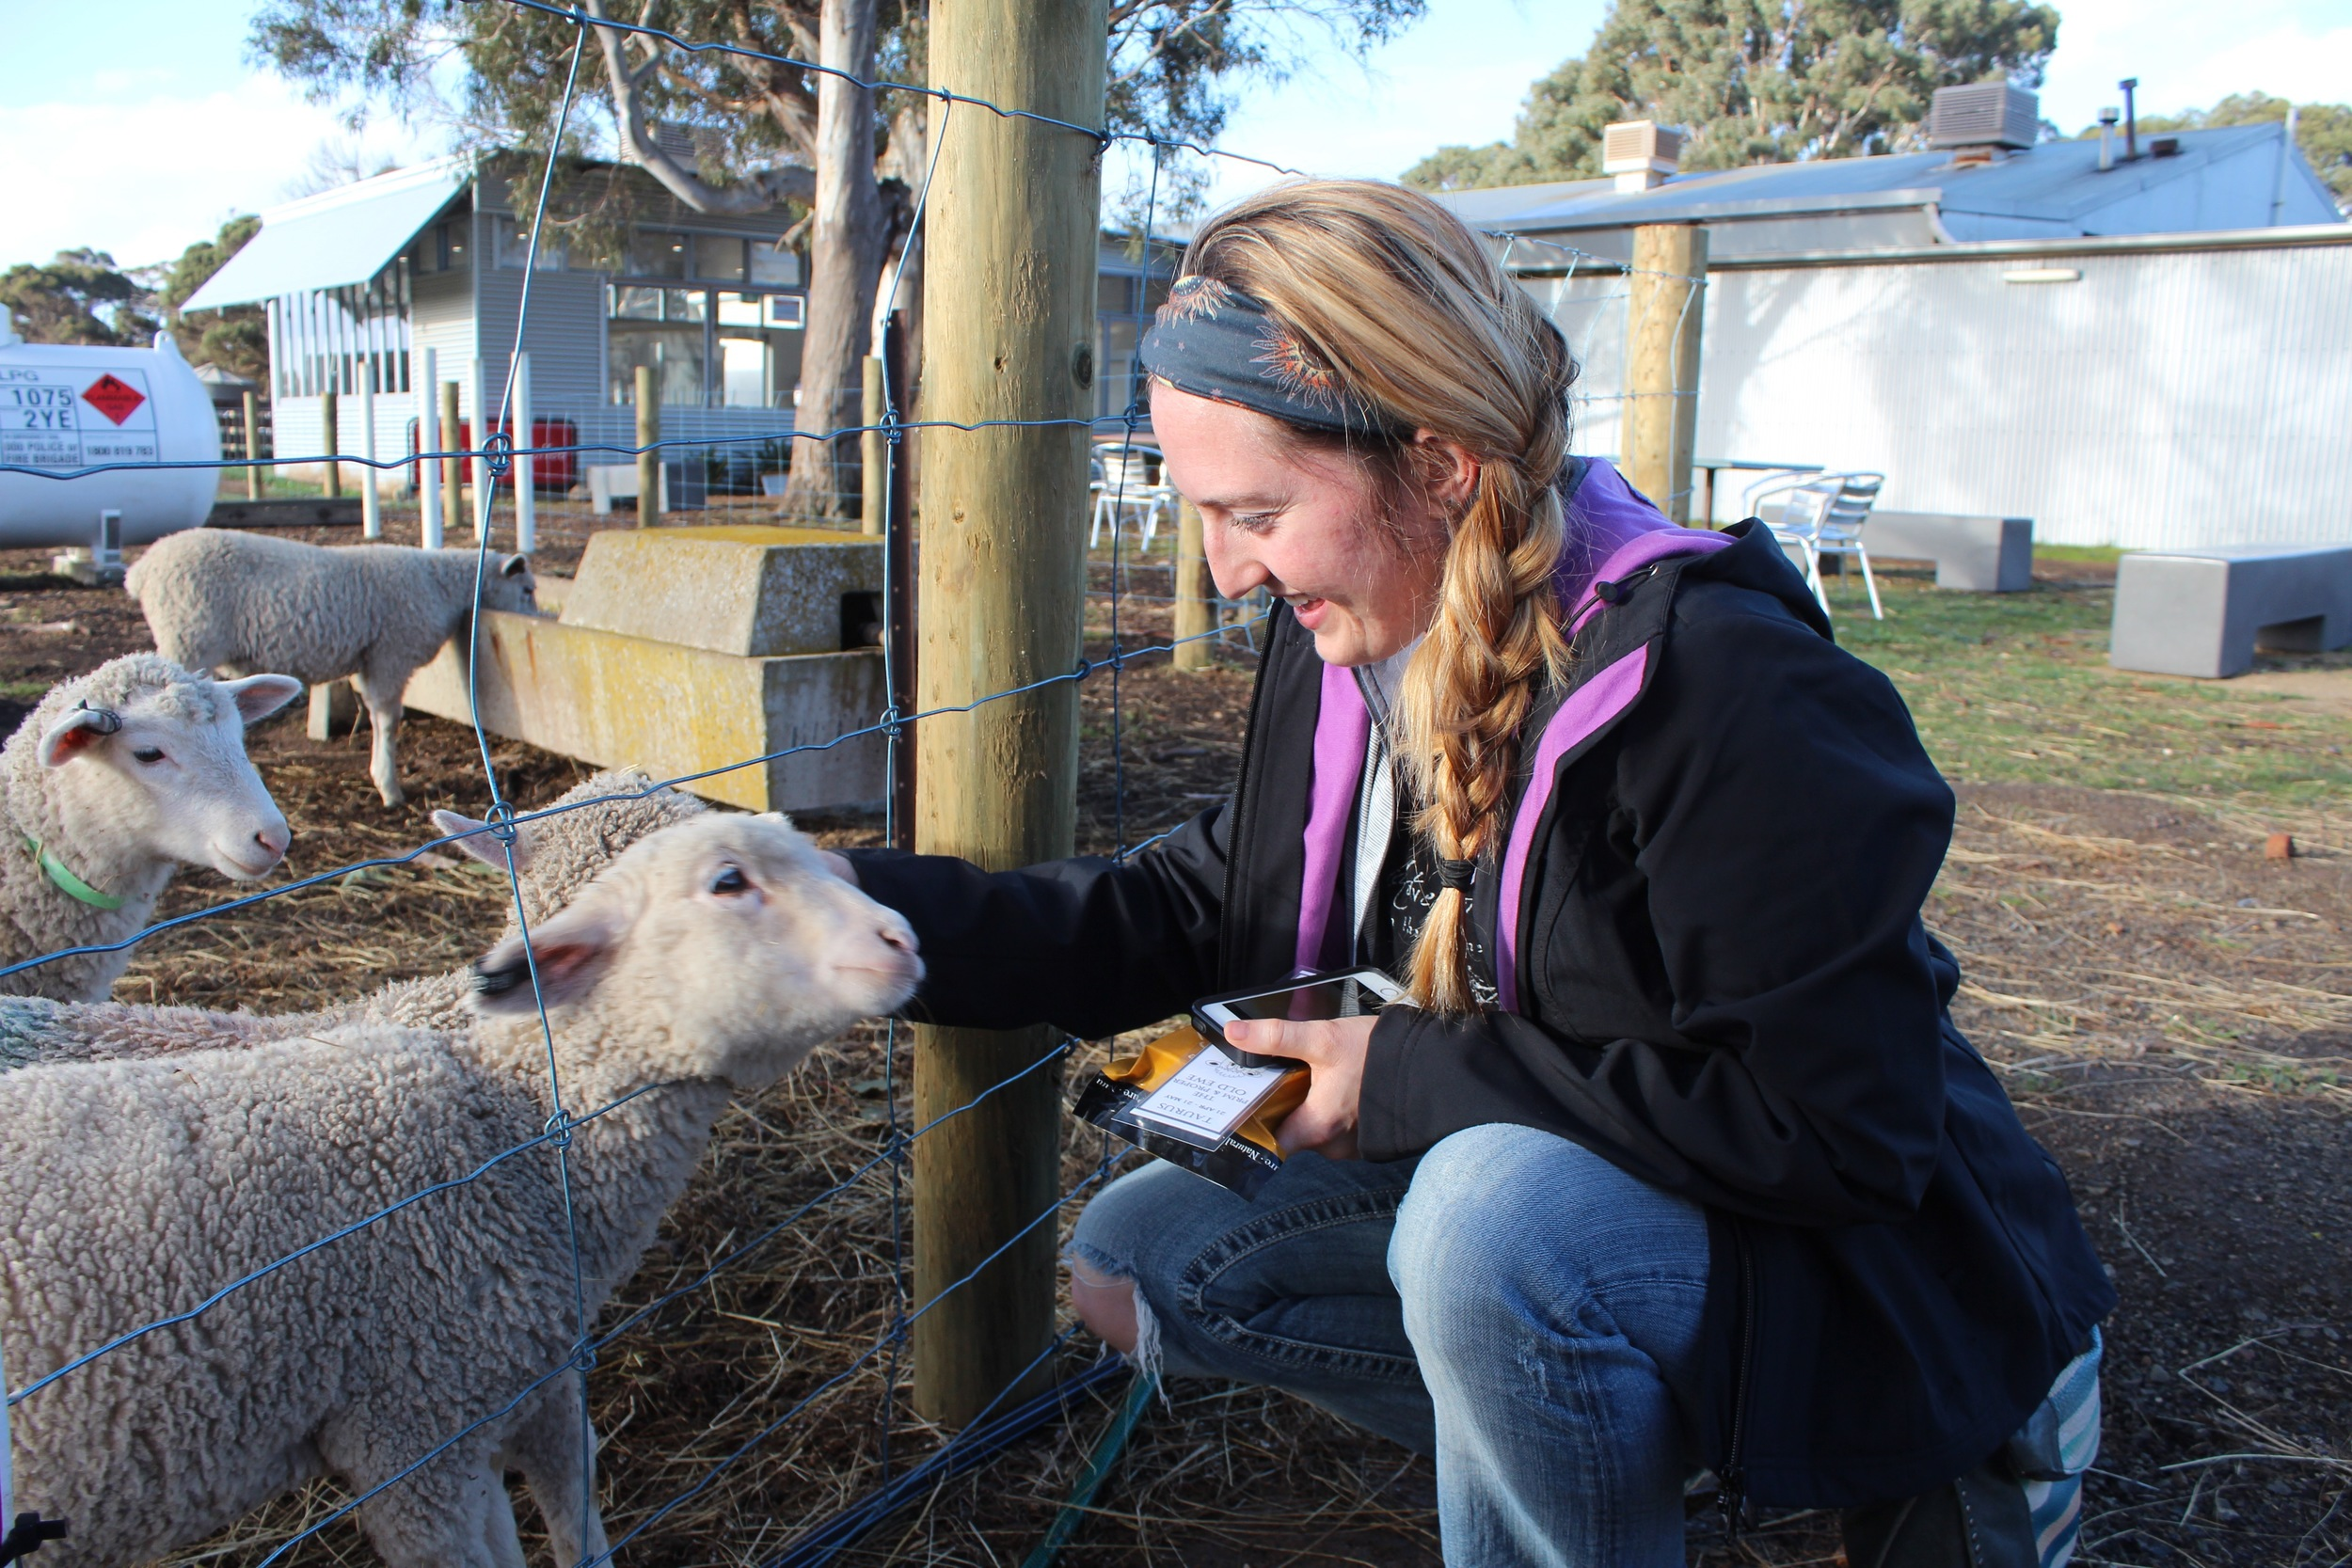 Me petting a sheep at Island Pure Dairy Farm.